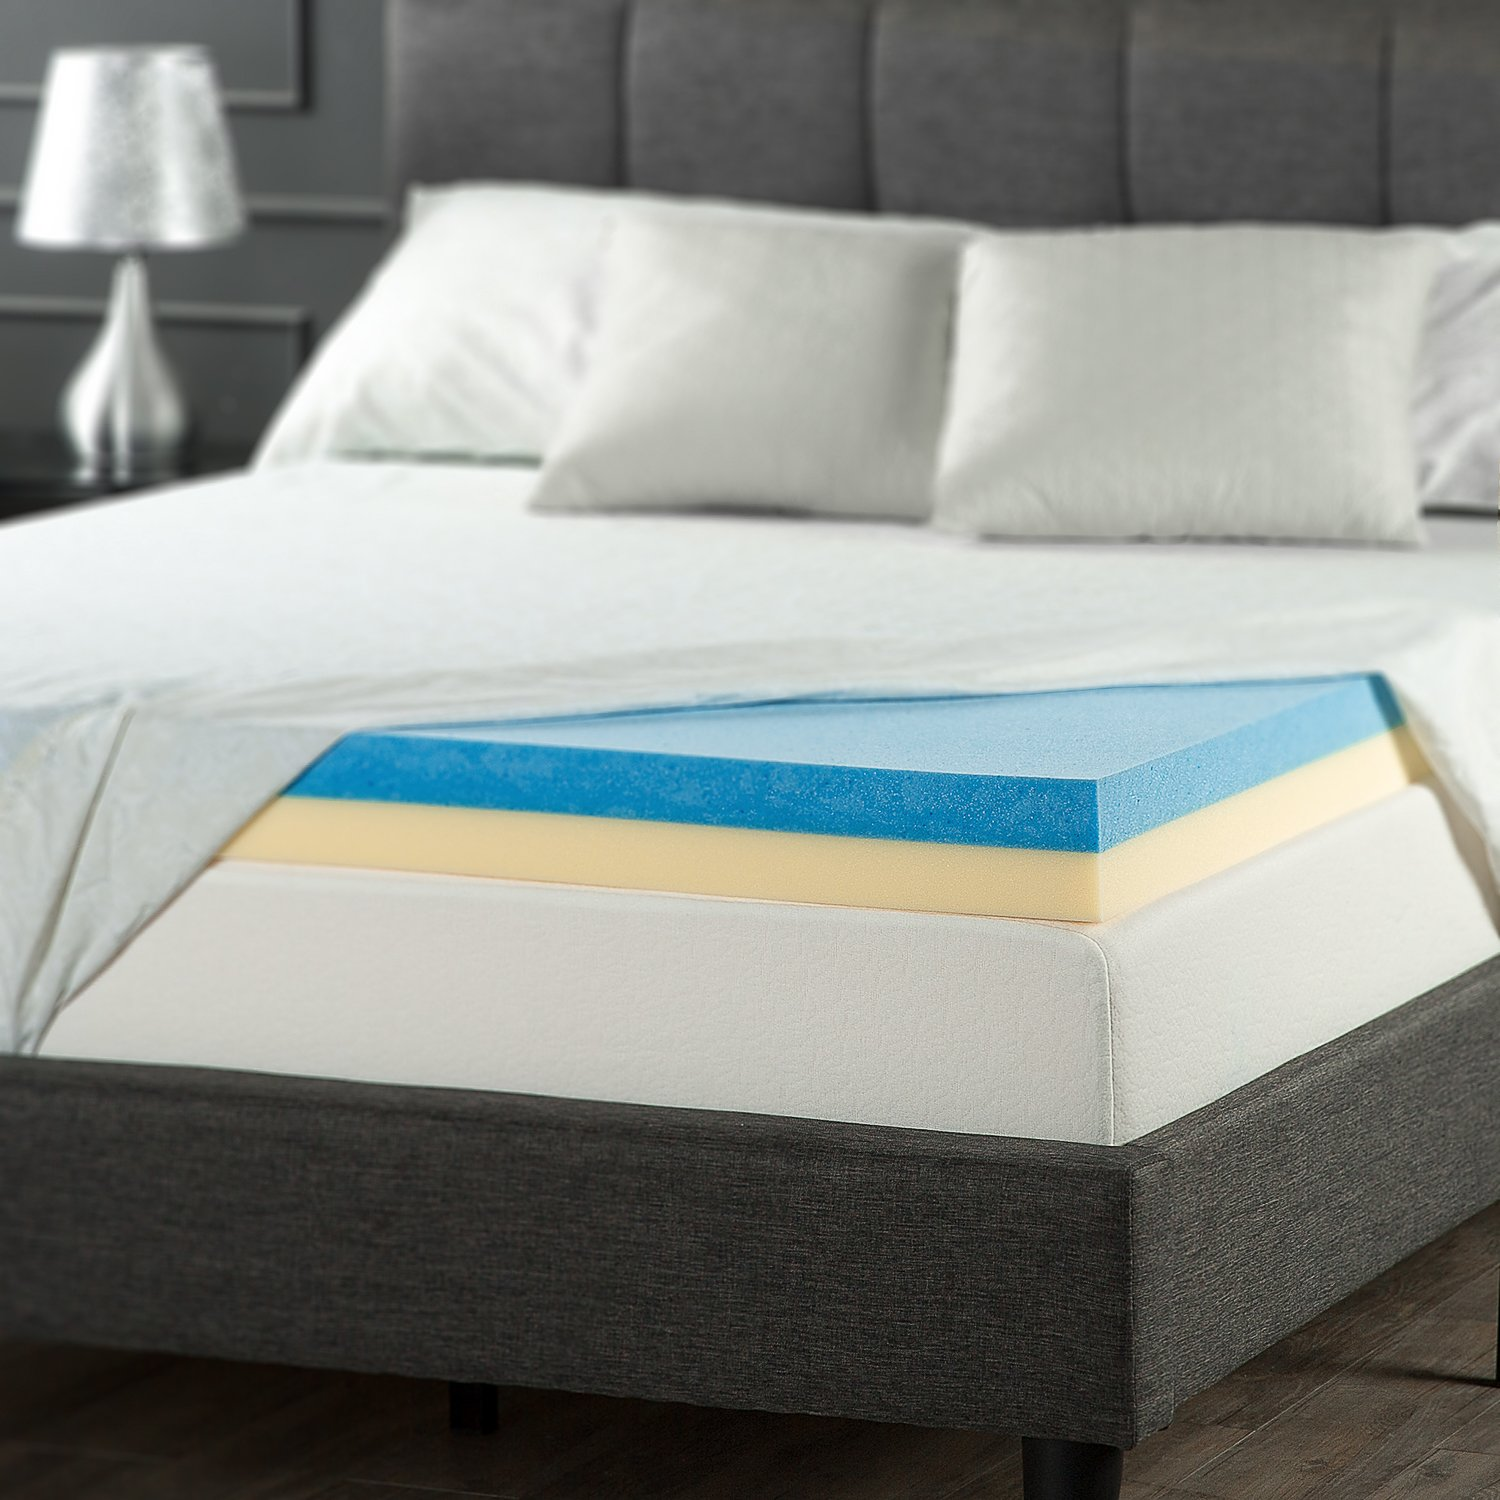 solutions riveting gorgeous memory shocking inch reviews gel form cover twin size slumber curious walmart likable mattress topper wonderful full marvelous serta foam of queen